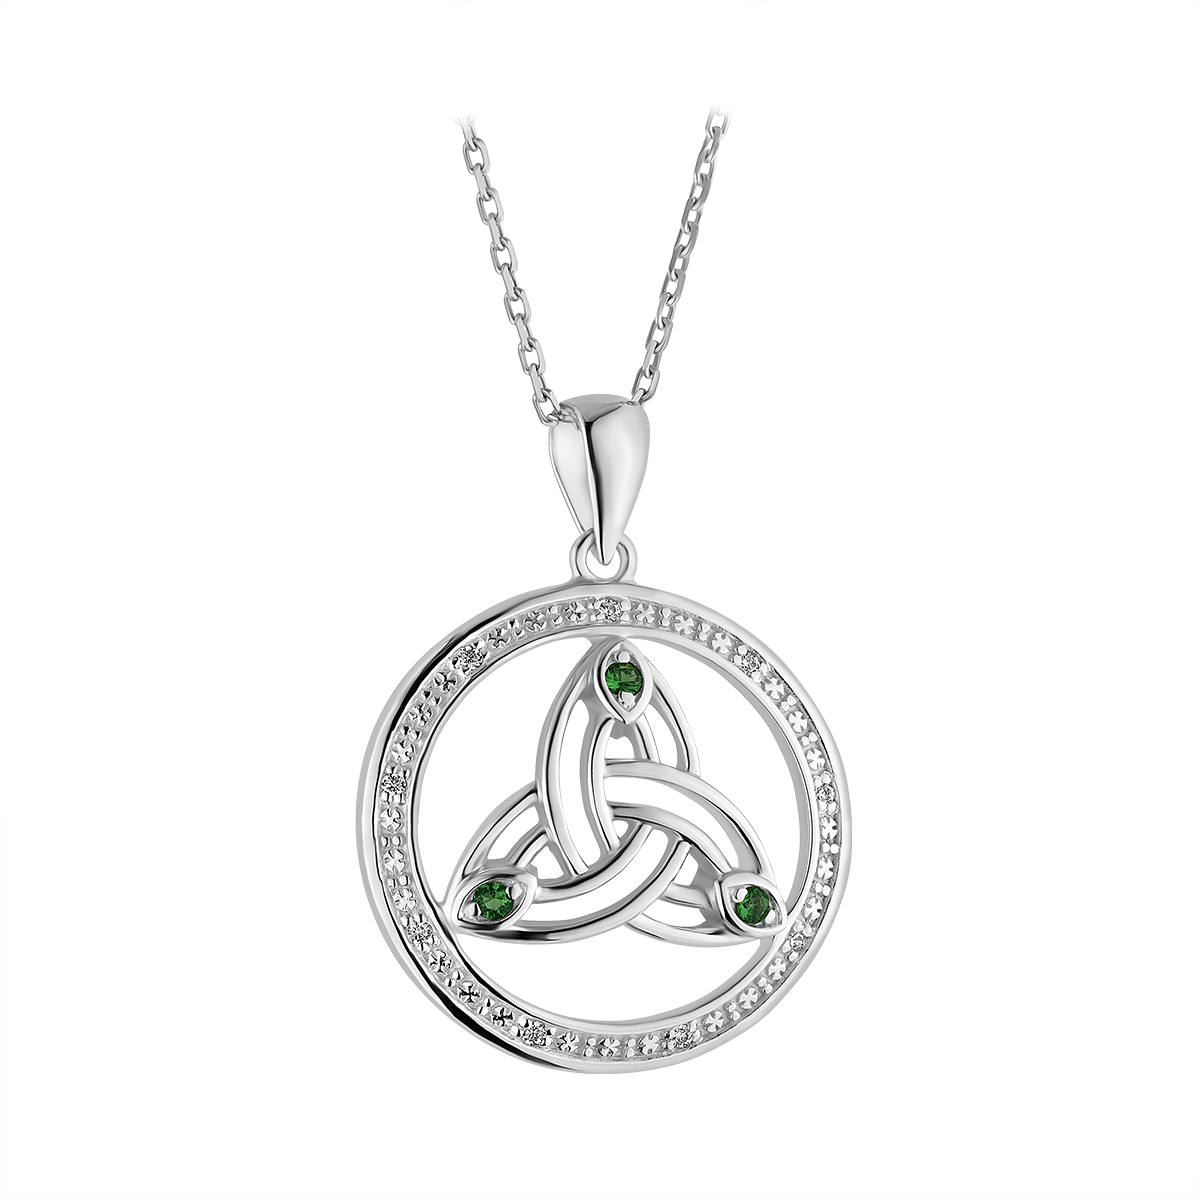 Irish Necklace | Sterling Silver Crystal Round Celtic Trinity Knot Pendant